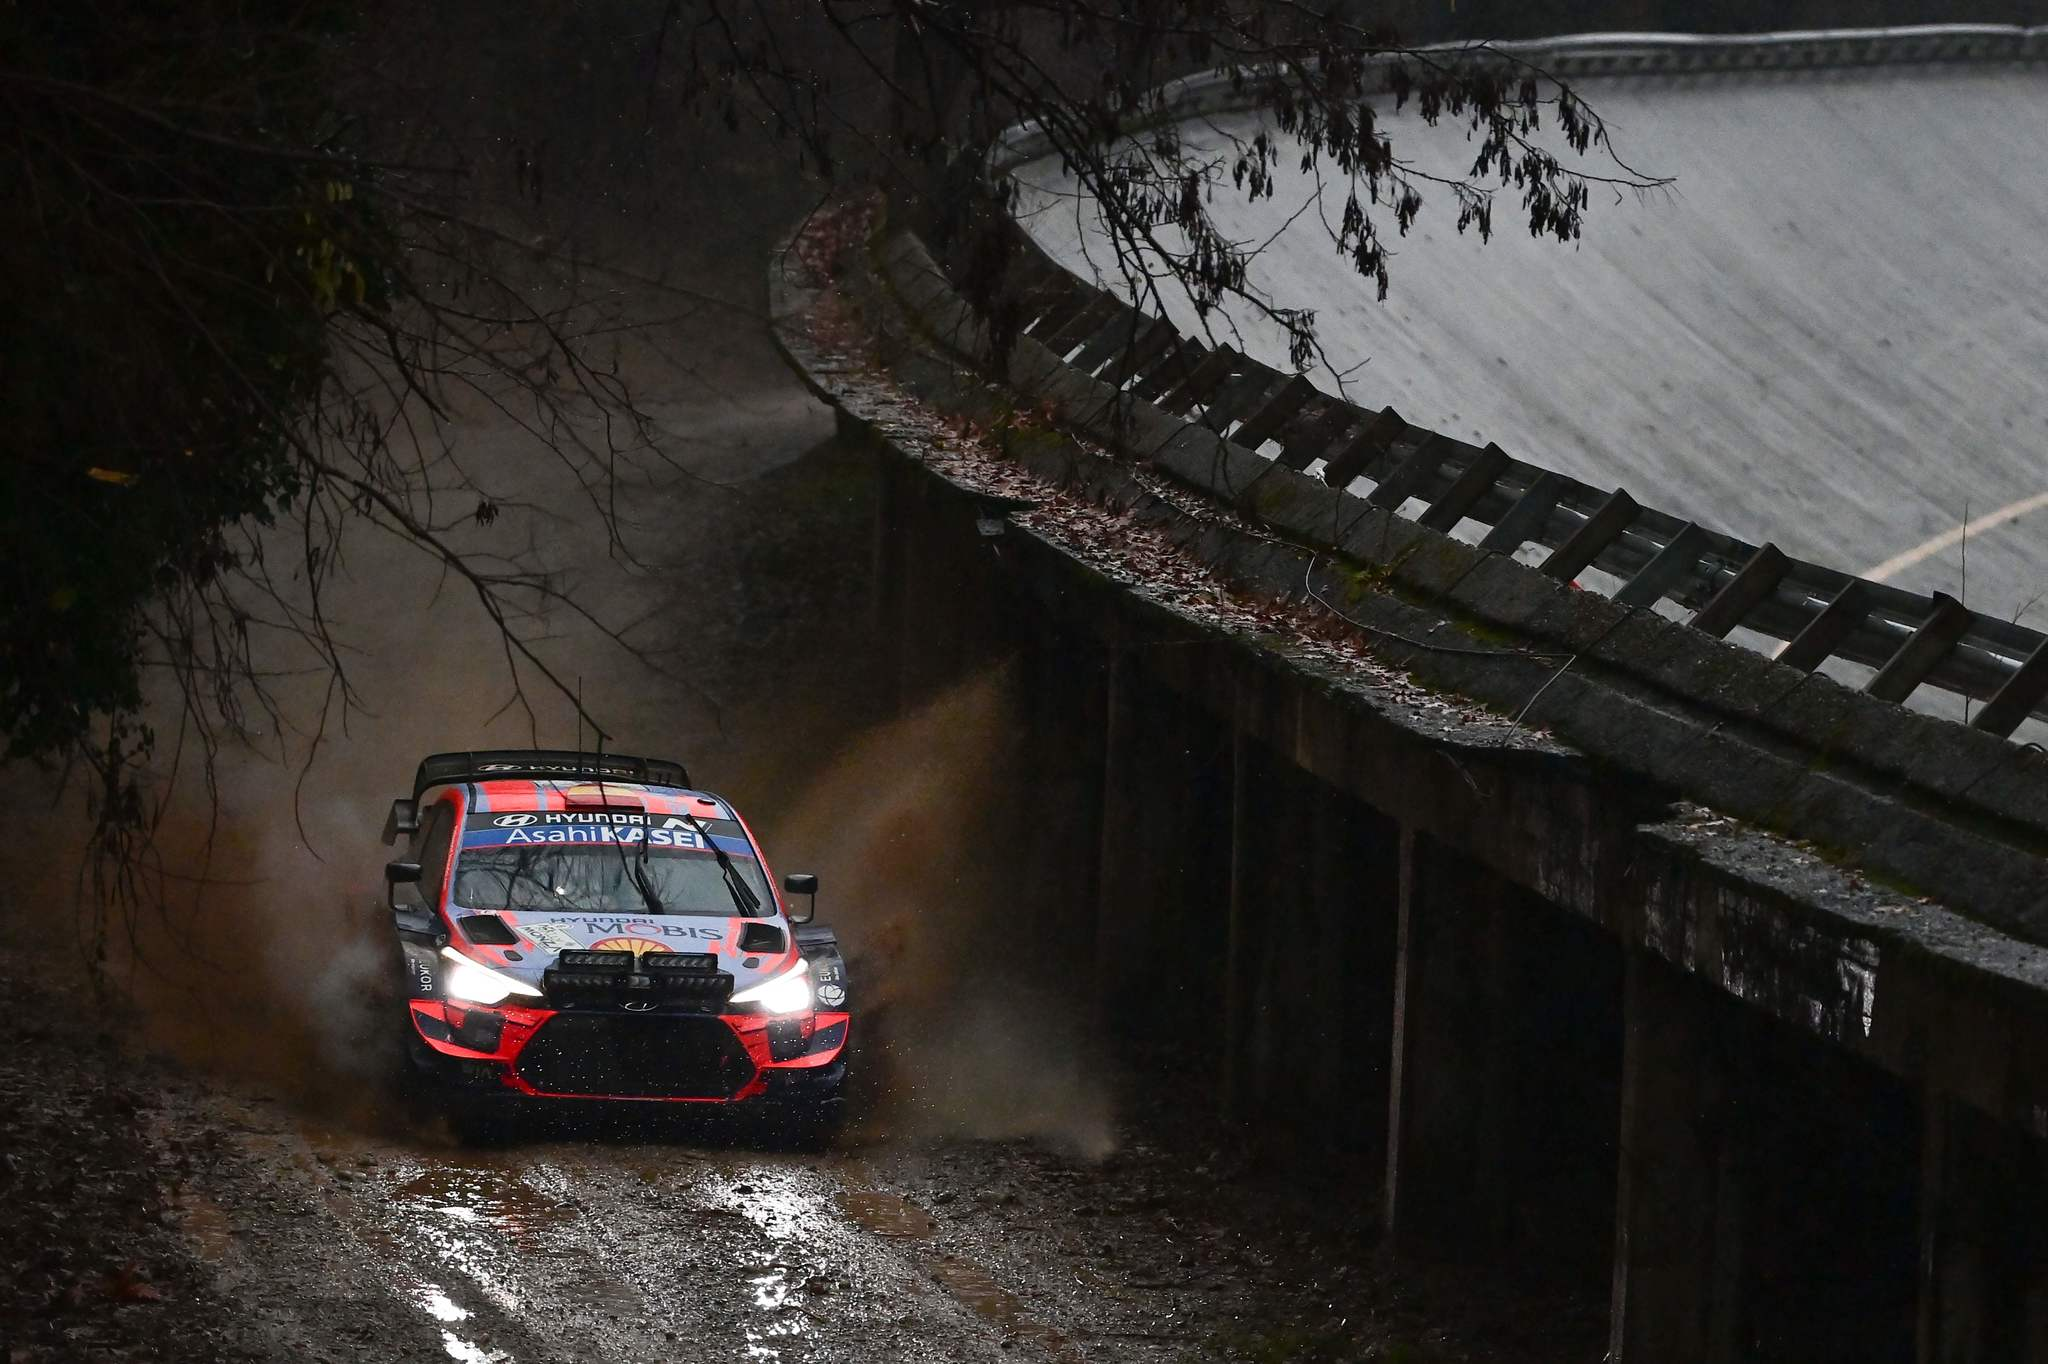 TOPSHOT - Spains driver Dani lt;HIT gt;Sordo lt;/HIT gt; and Spains co-driver Carlos Del Barrio steer their Hyundai i20 coupe WRC during the afternoon SS5 stage of the FIA World Rally Championship at the Autodromo Nazionale circuit in Monza on December 4, 2020. (Photo by MIGUEL MEDINA / AFP)